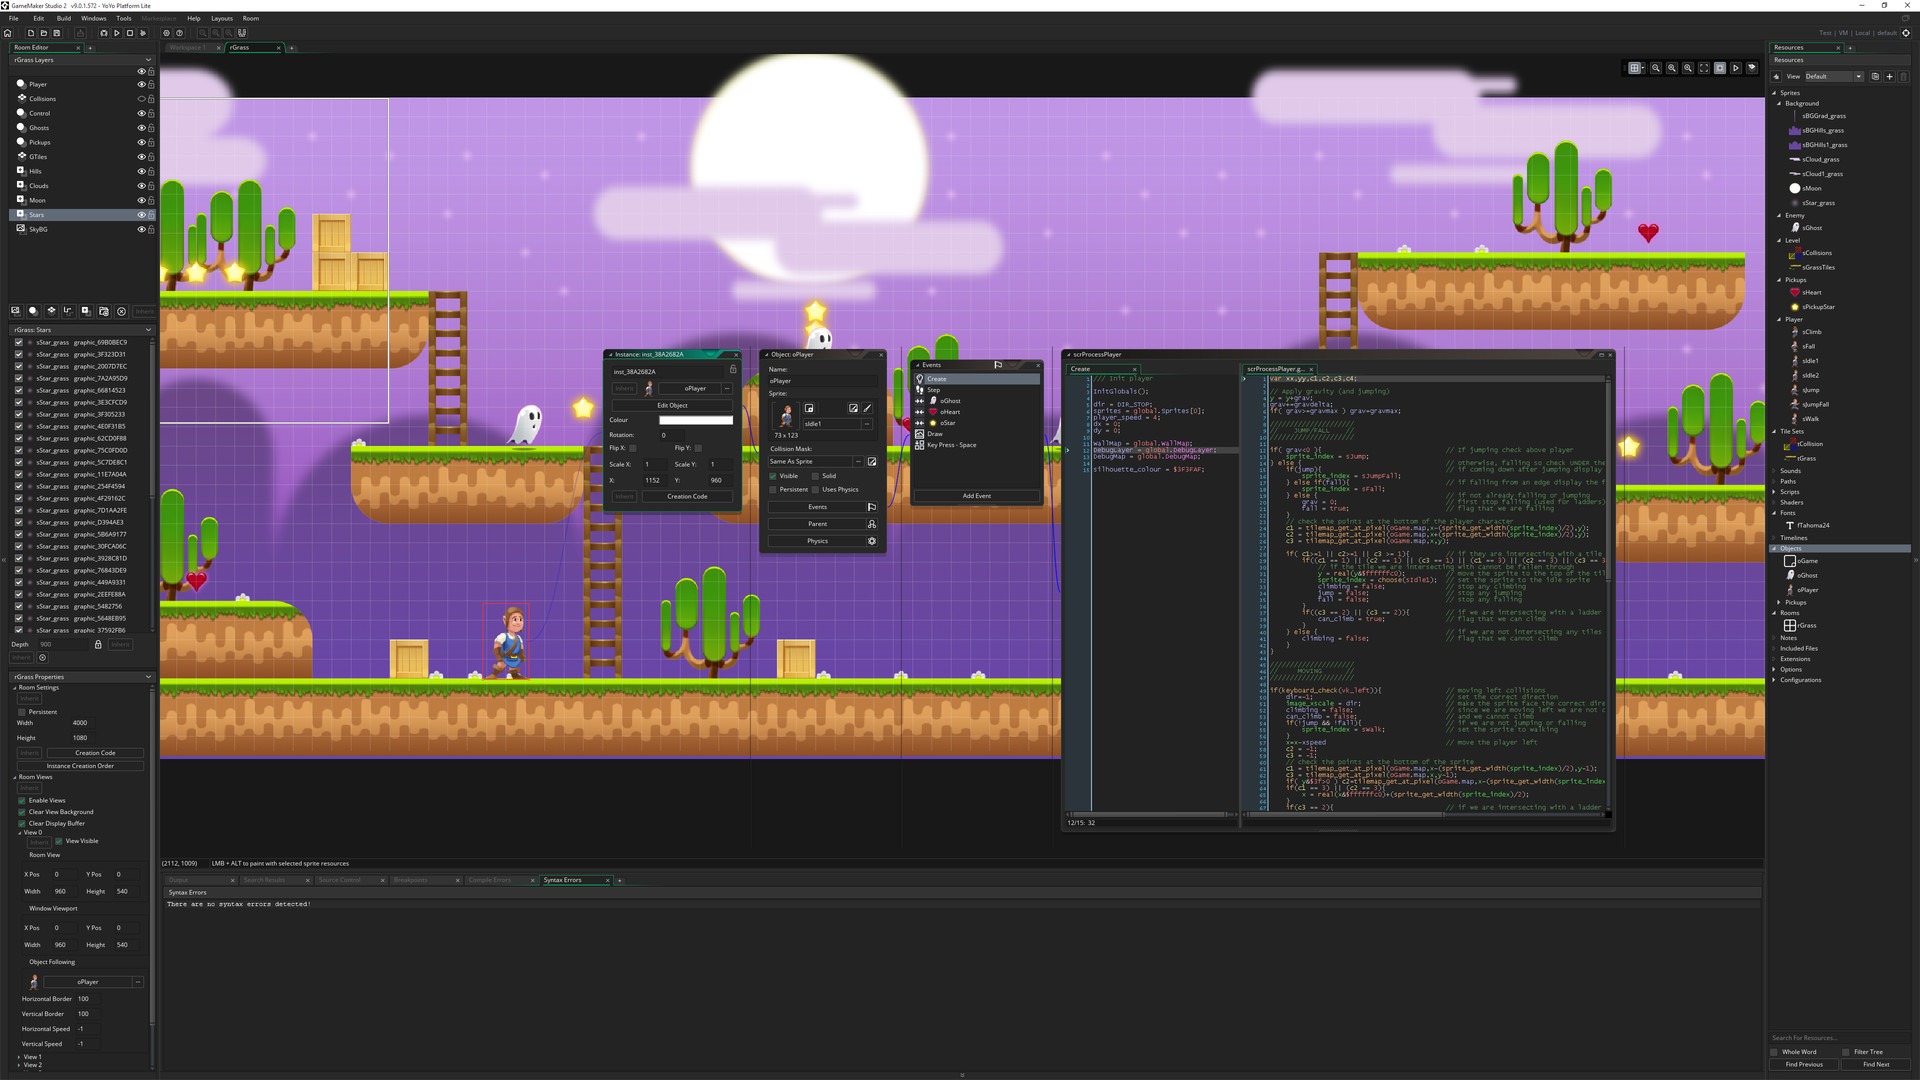 gamemaker studio 2 mobile free download